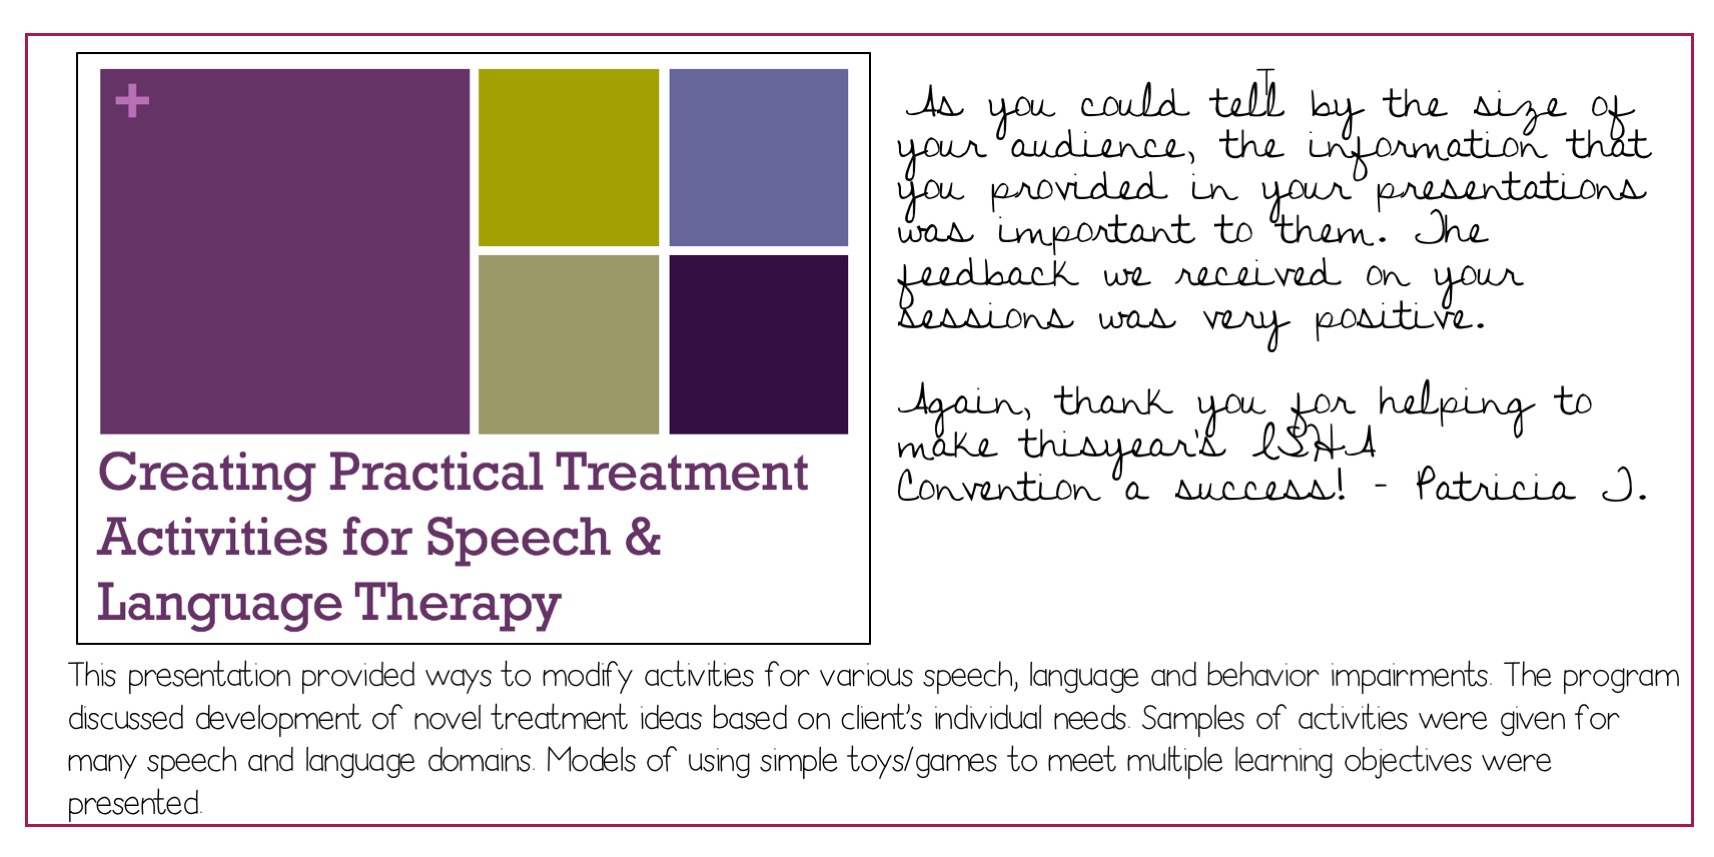 speaking professional development speech room news slide3 slide4